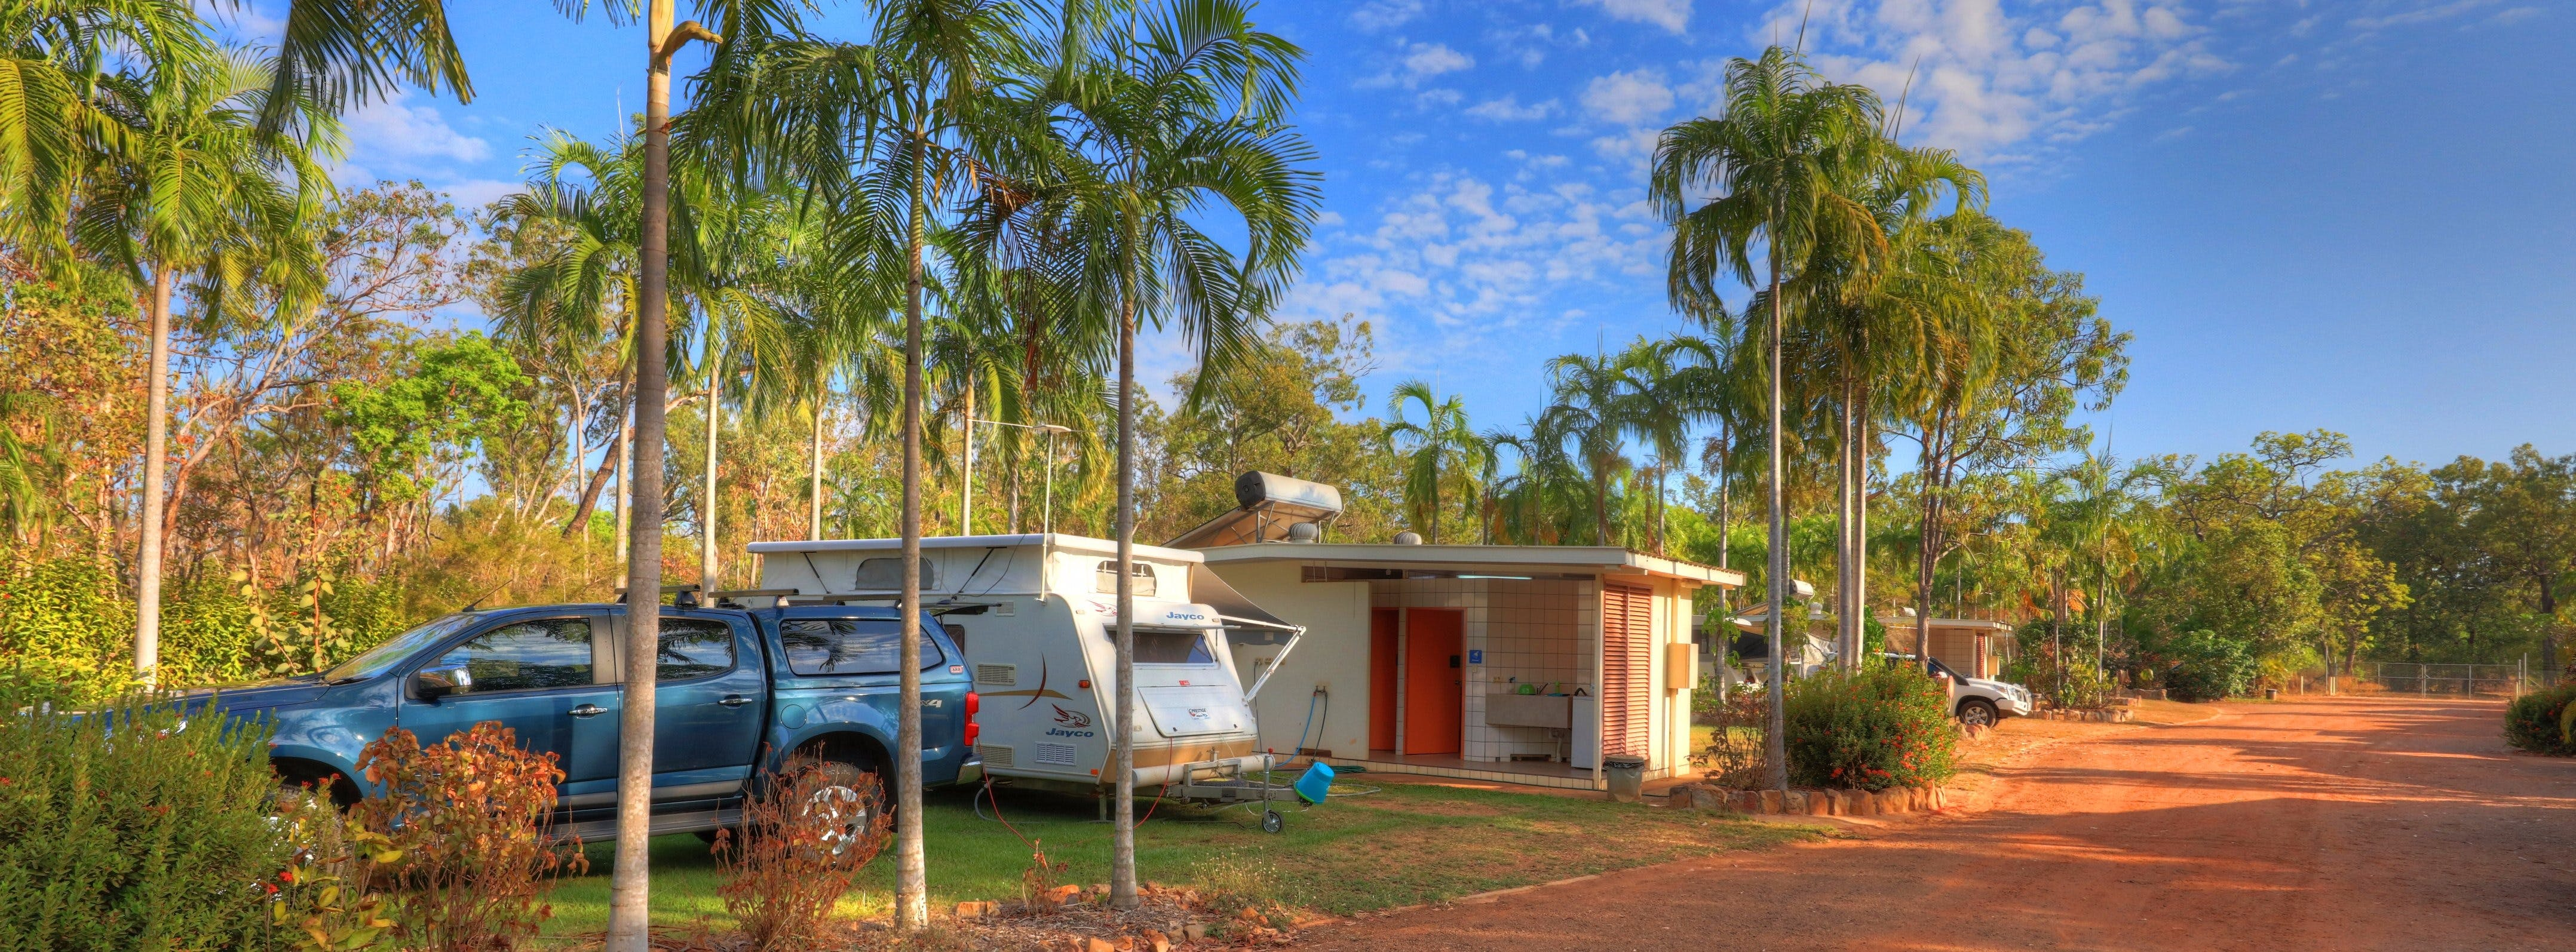 Batchelor Holiday Park - Accommodation Tasmania